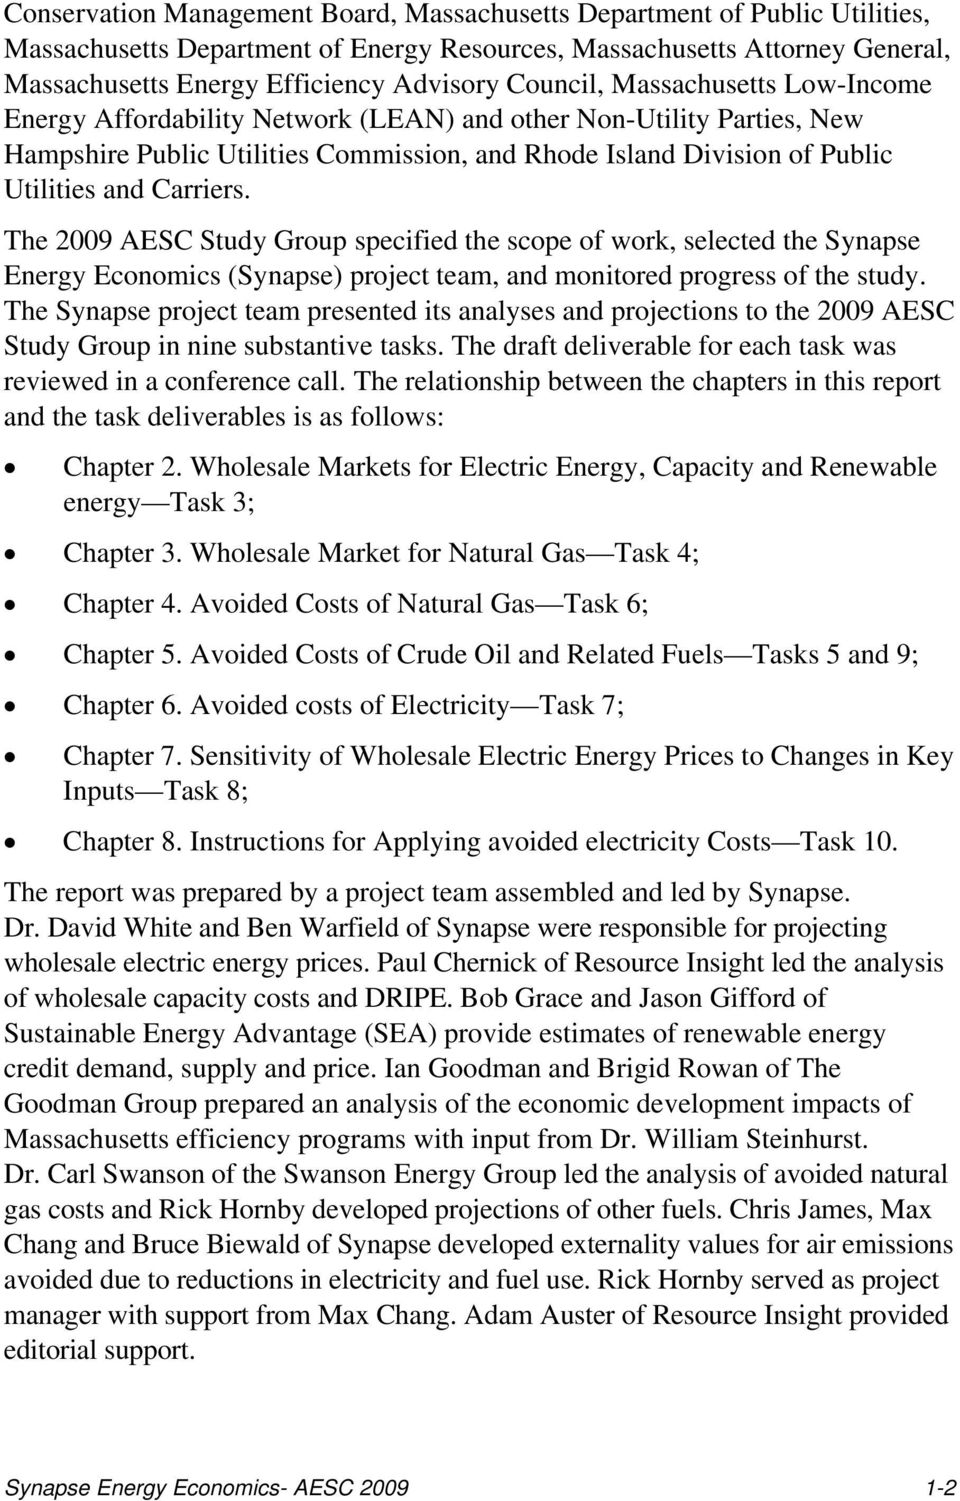 Carriers. The 2009 AESC Study Group specified the scope of work, selected the Synapse Energy Economics (Synapse) project team, and monitored progress of the study.